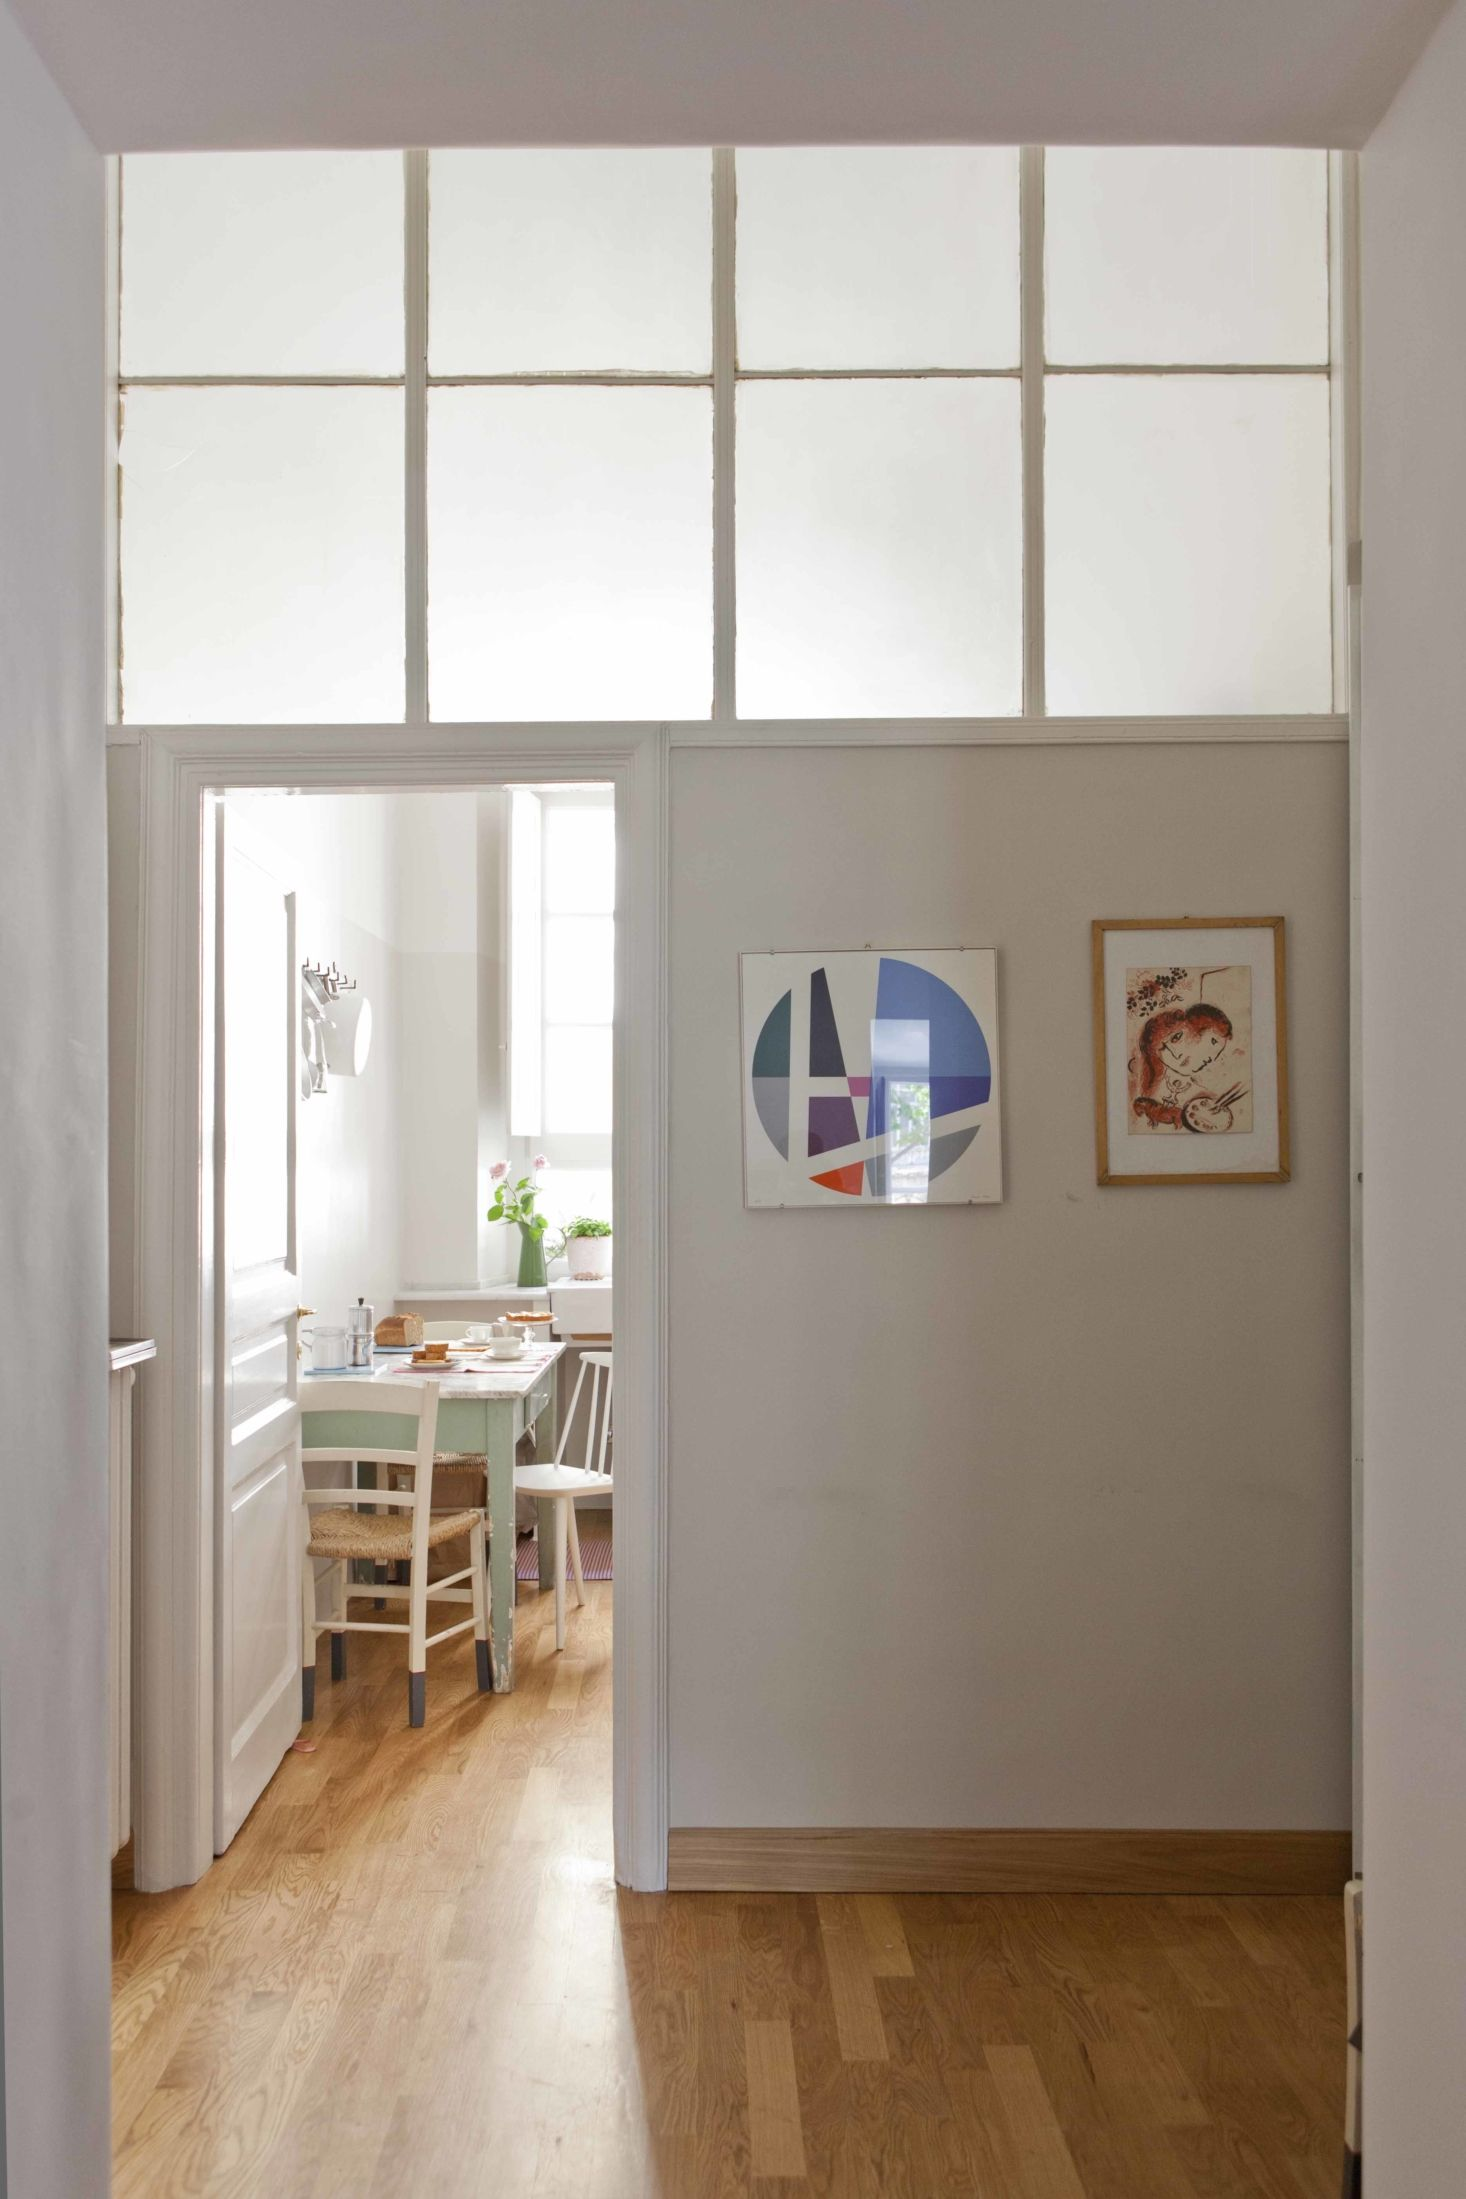 Ping Pong House An Architect S Own Playful But Serene 19th Century House In Rome Remodelista Interior Windows Glass Room Divider Half Wall Room Divider